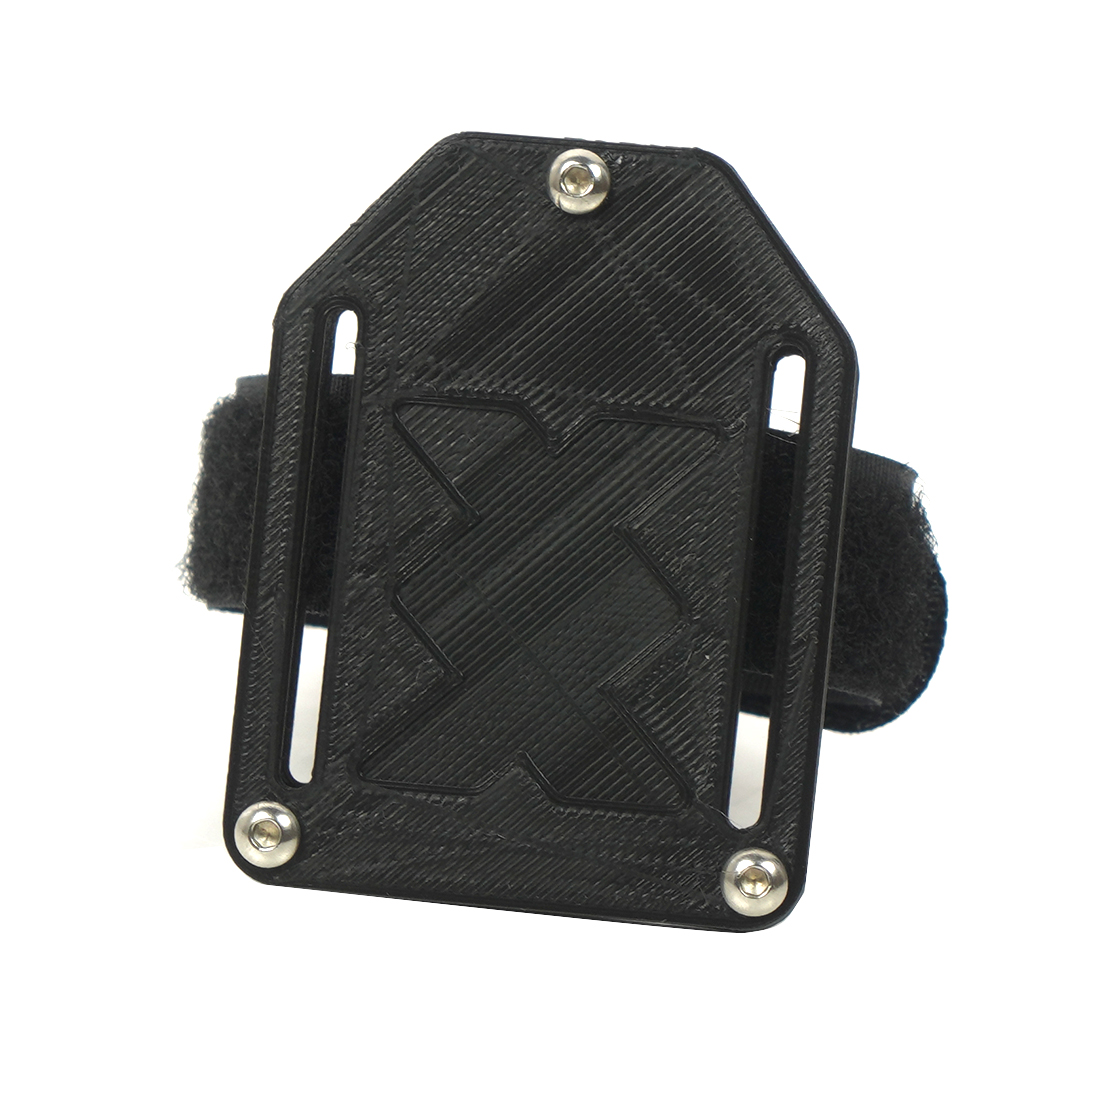 JMT Black 3D Printed PLA Hang Set Strap Tie & Mounting Plate for FPV Drone Backpack